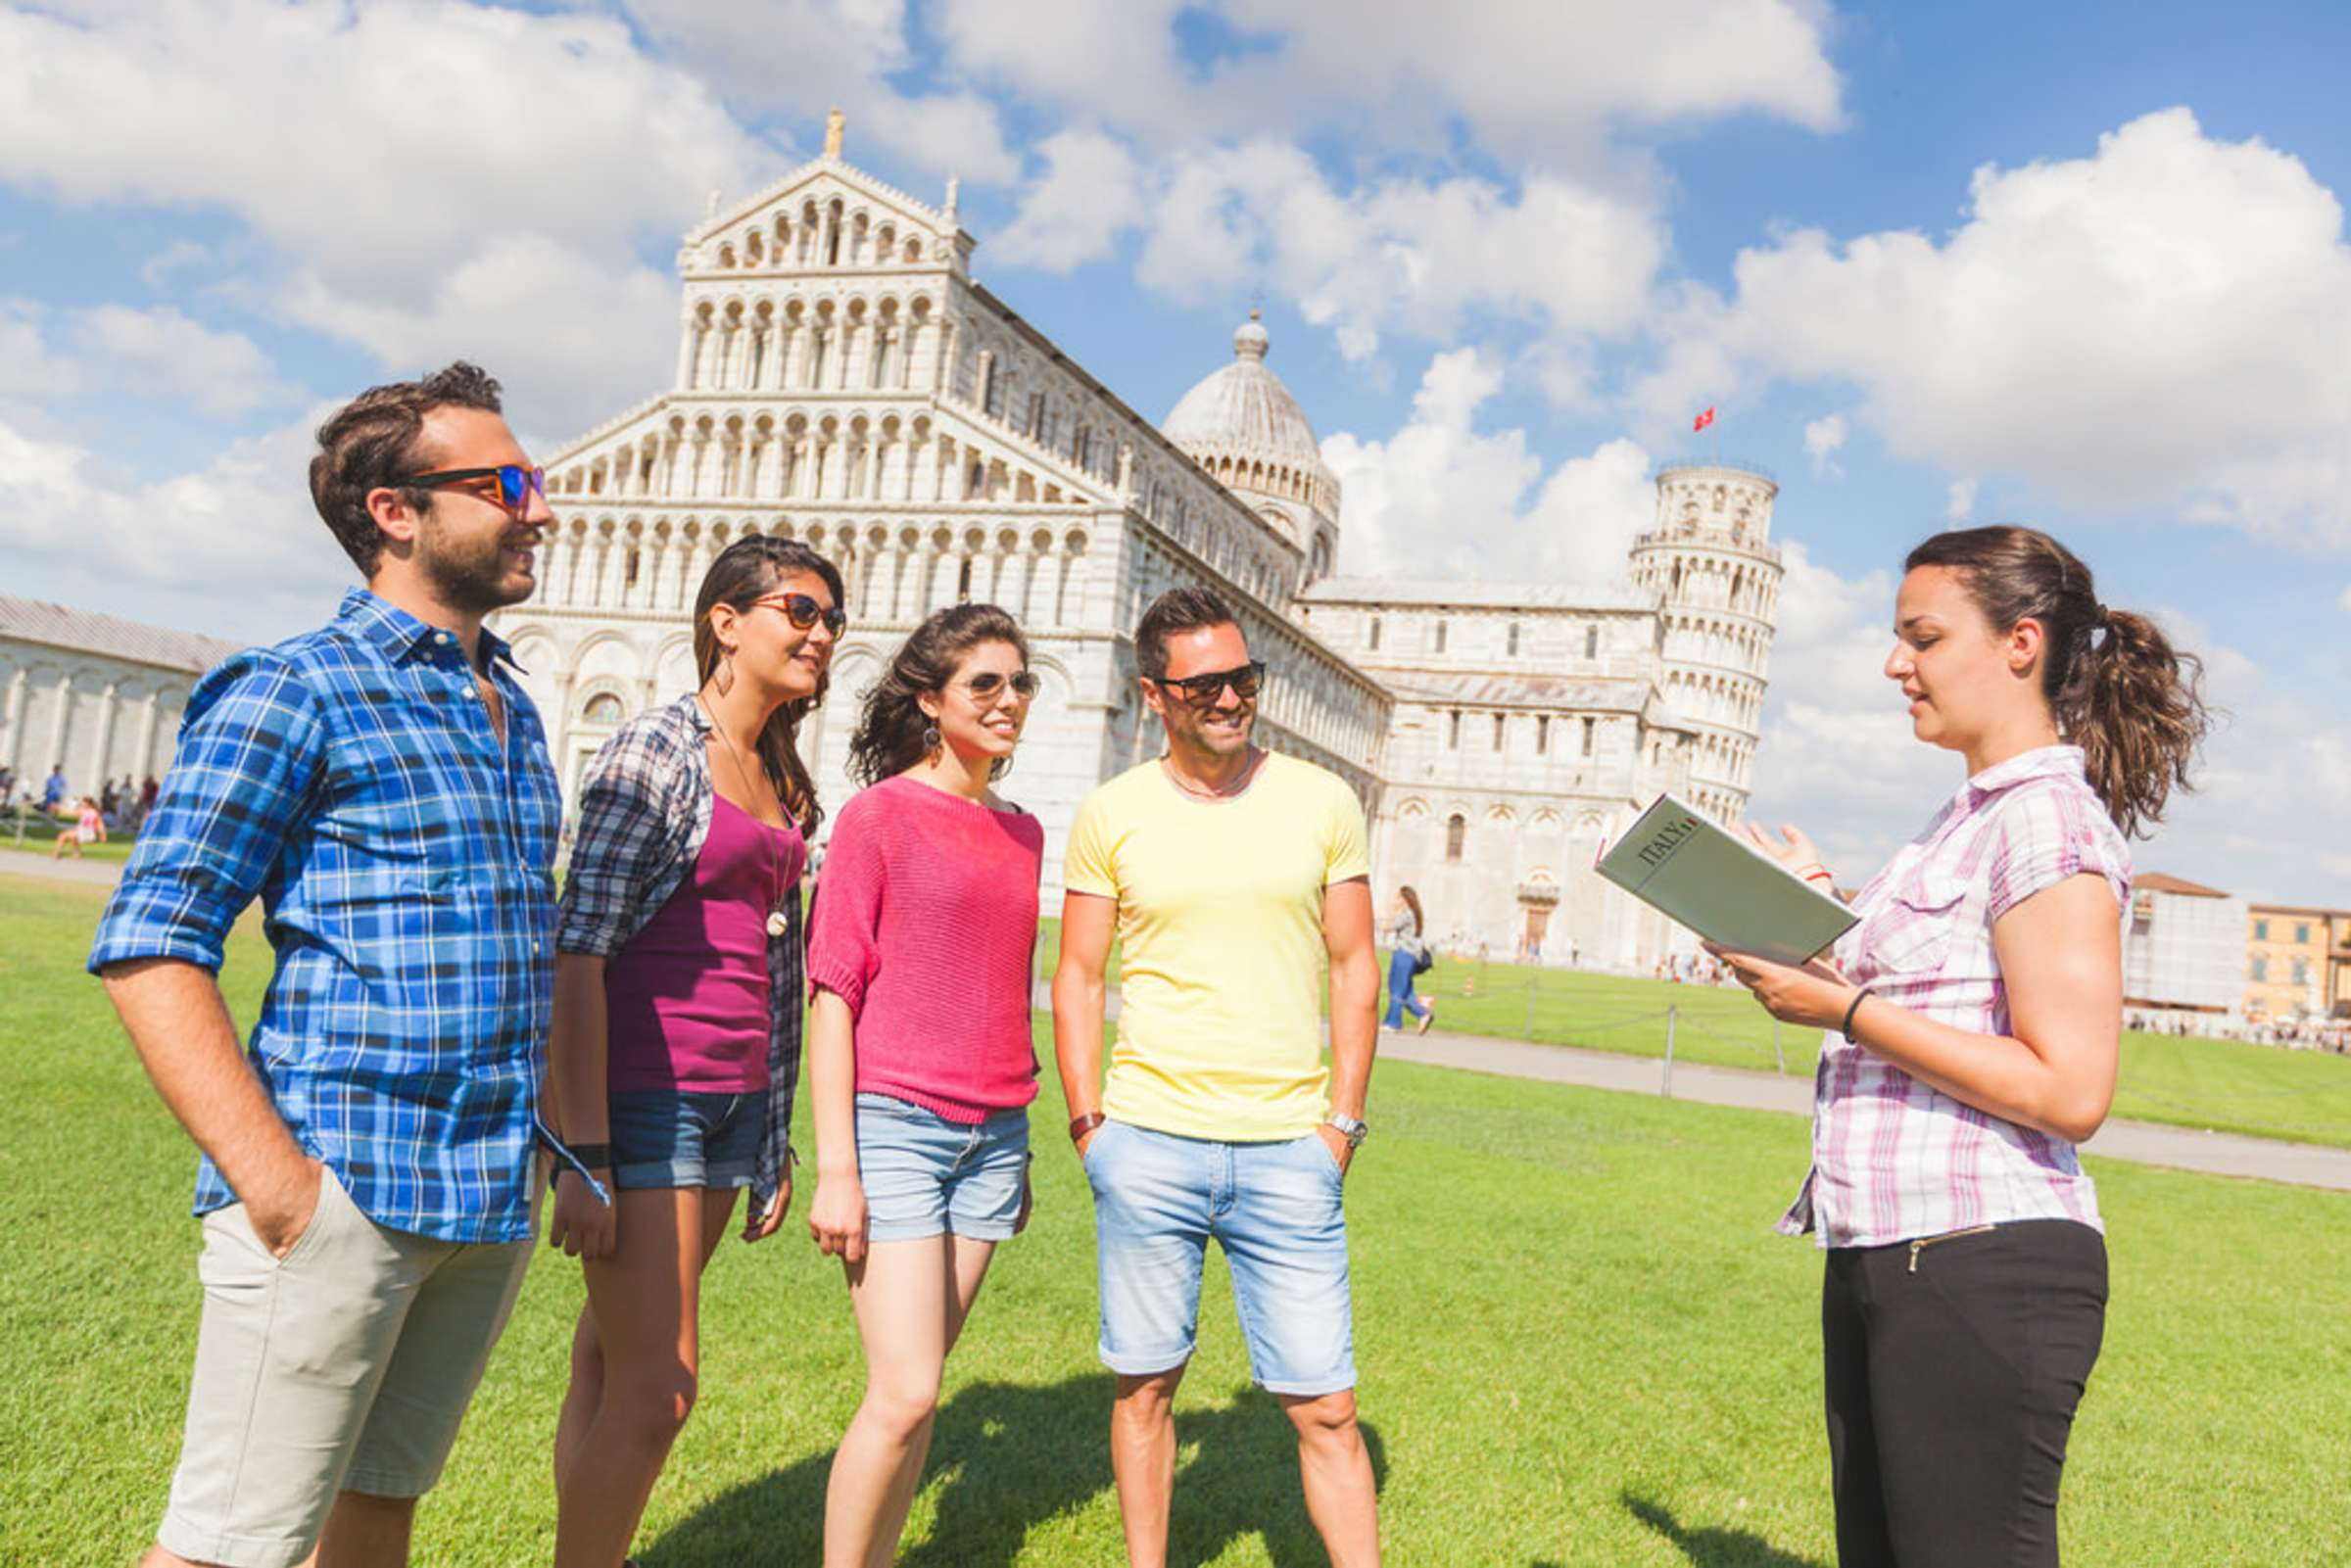 Introduction to Pisa